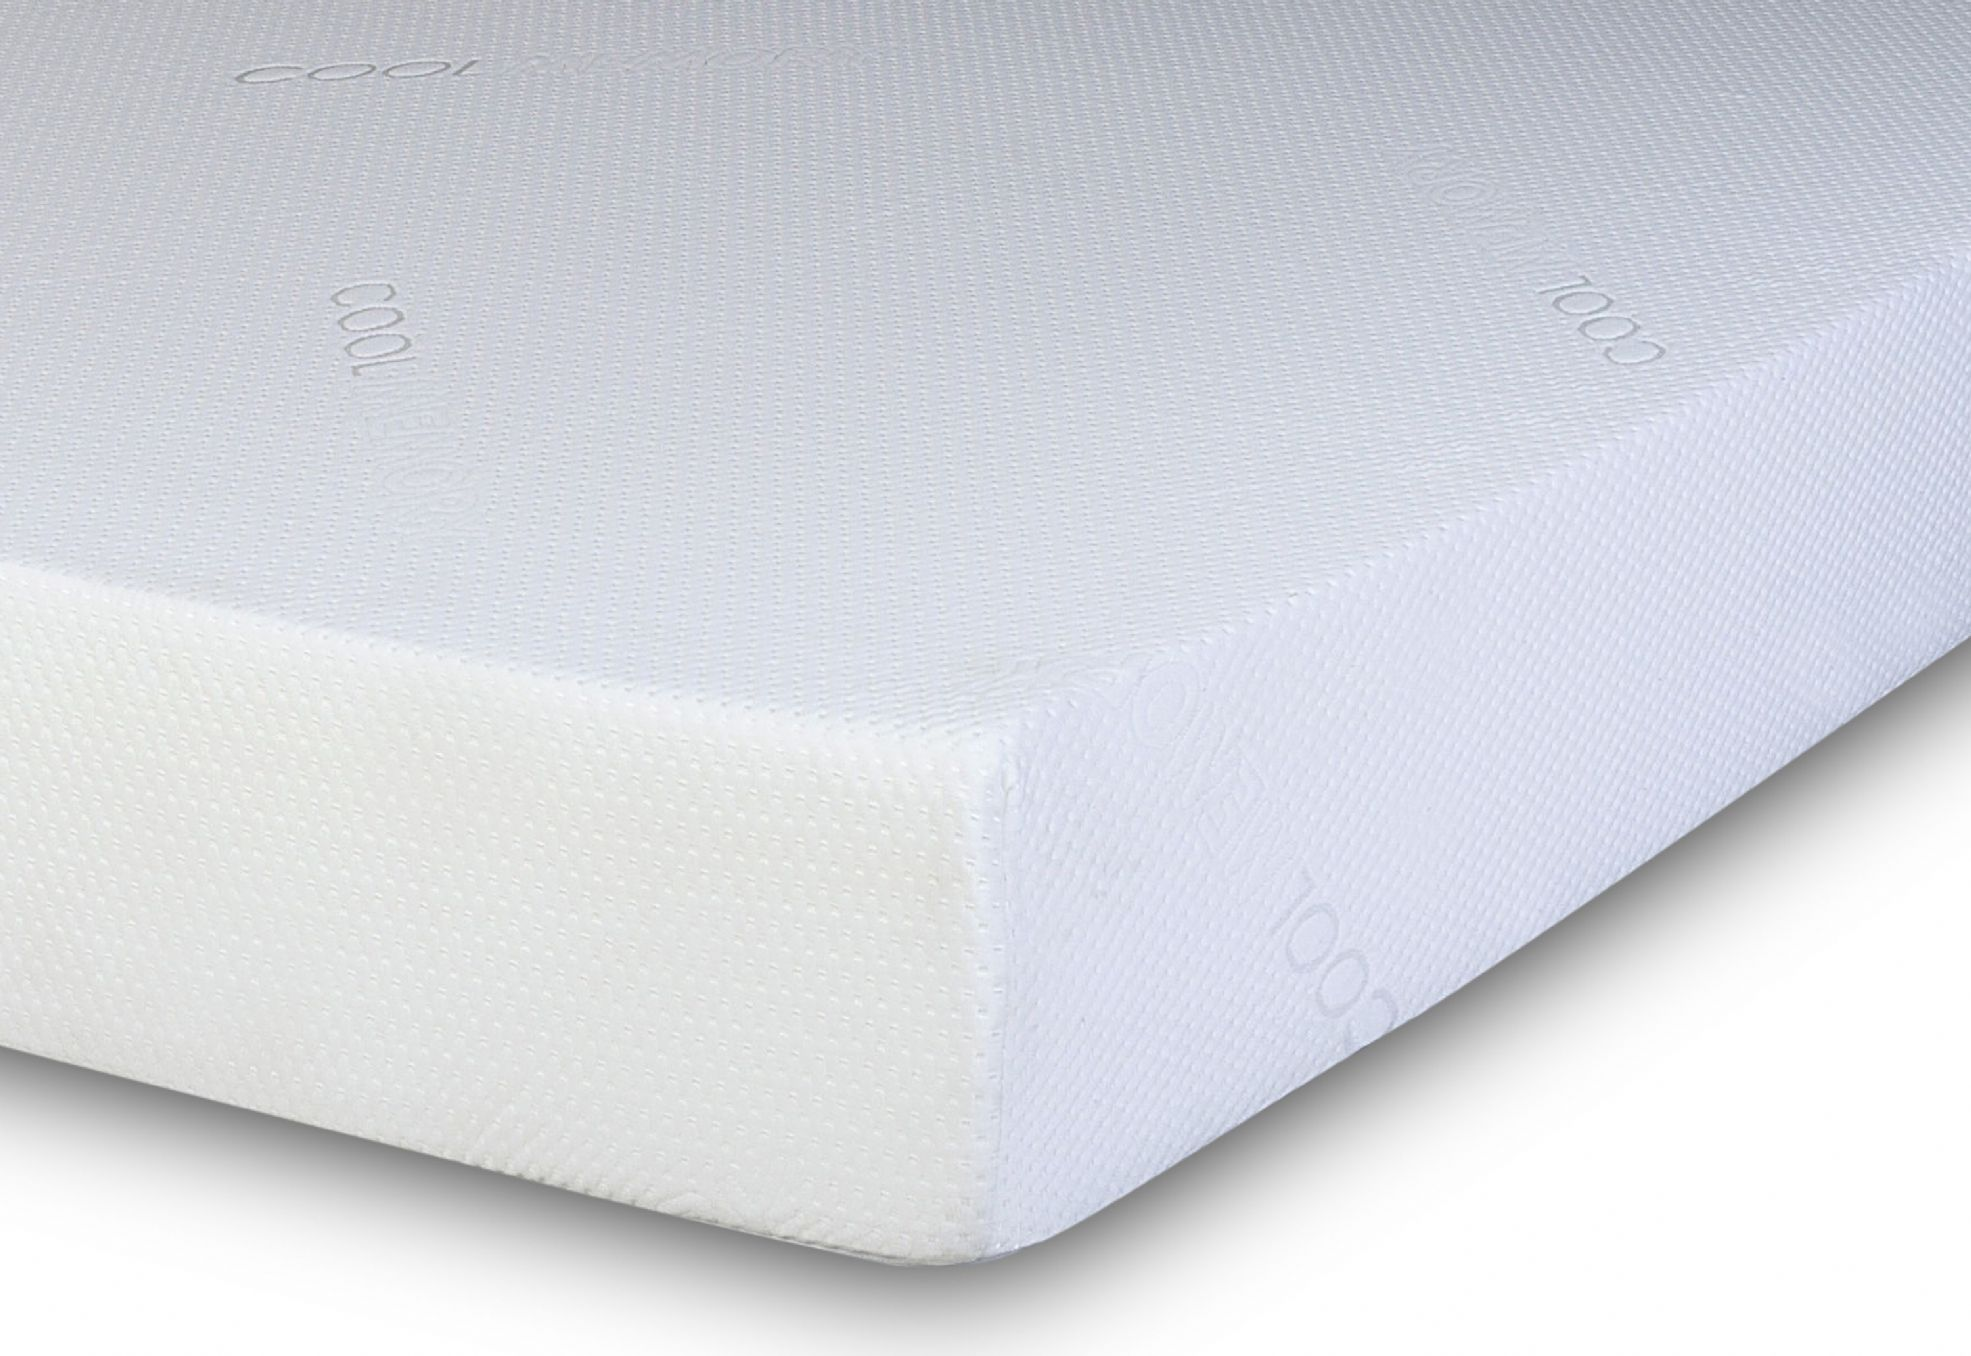 Memory Foam Ortho King Mattress Pillows